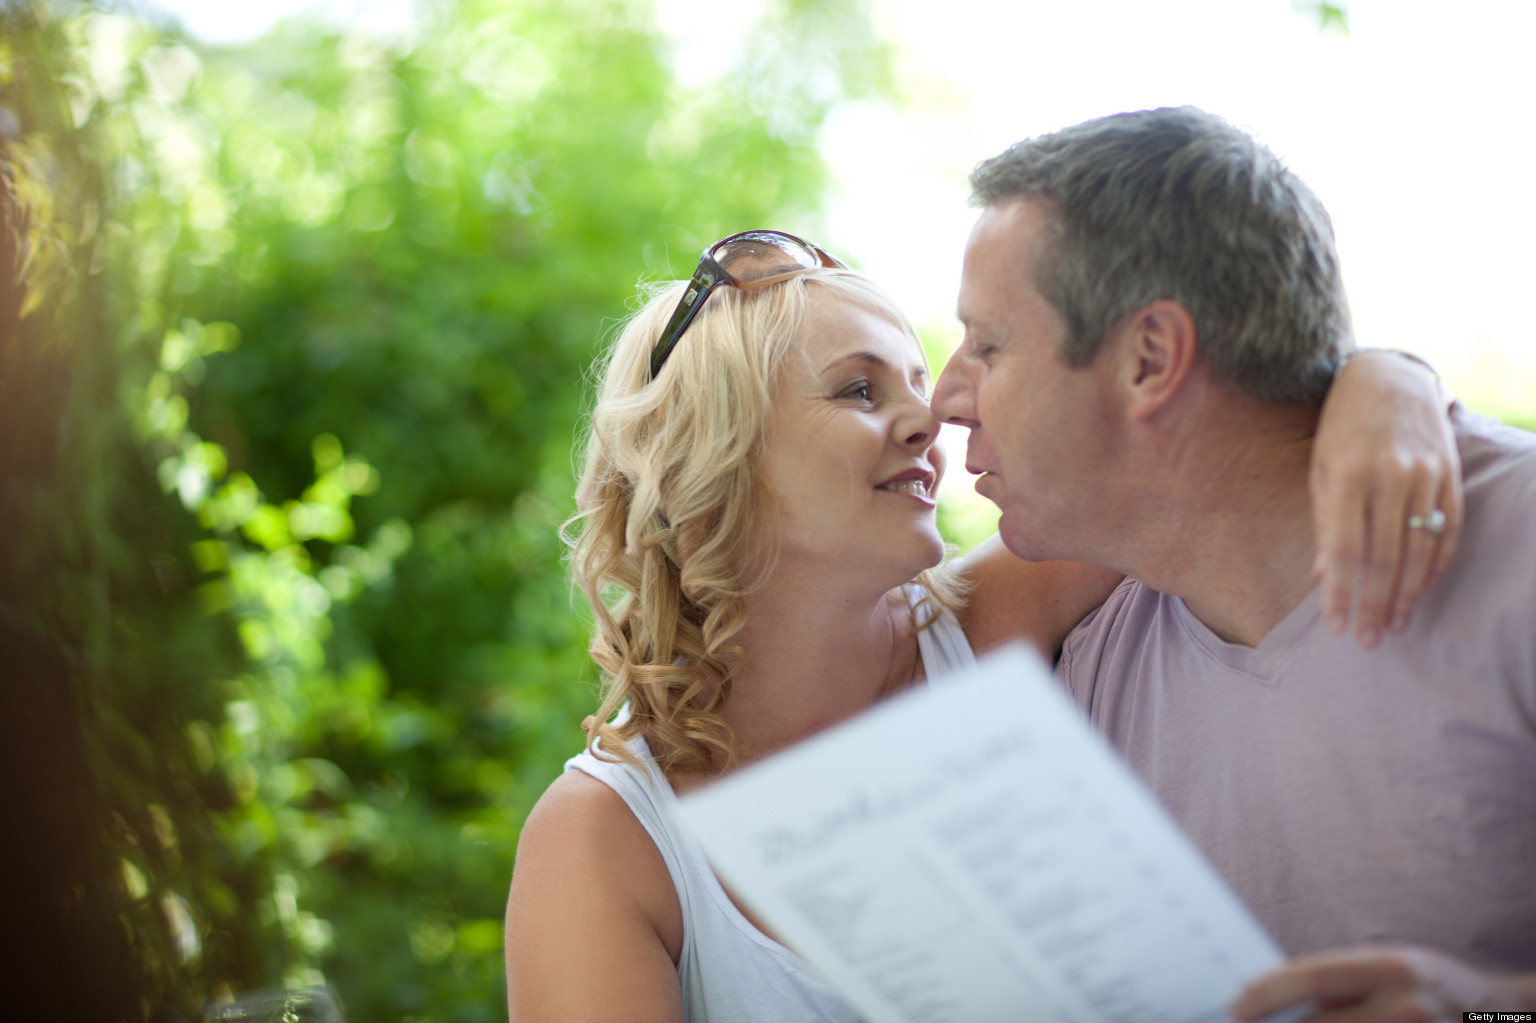 Upscale dating sites for 50+